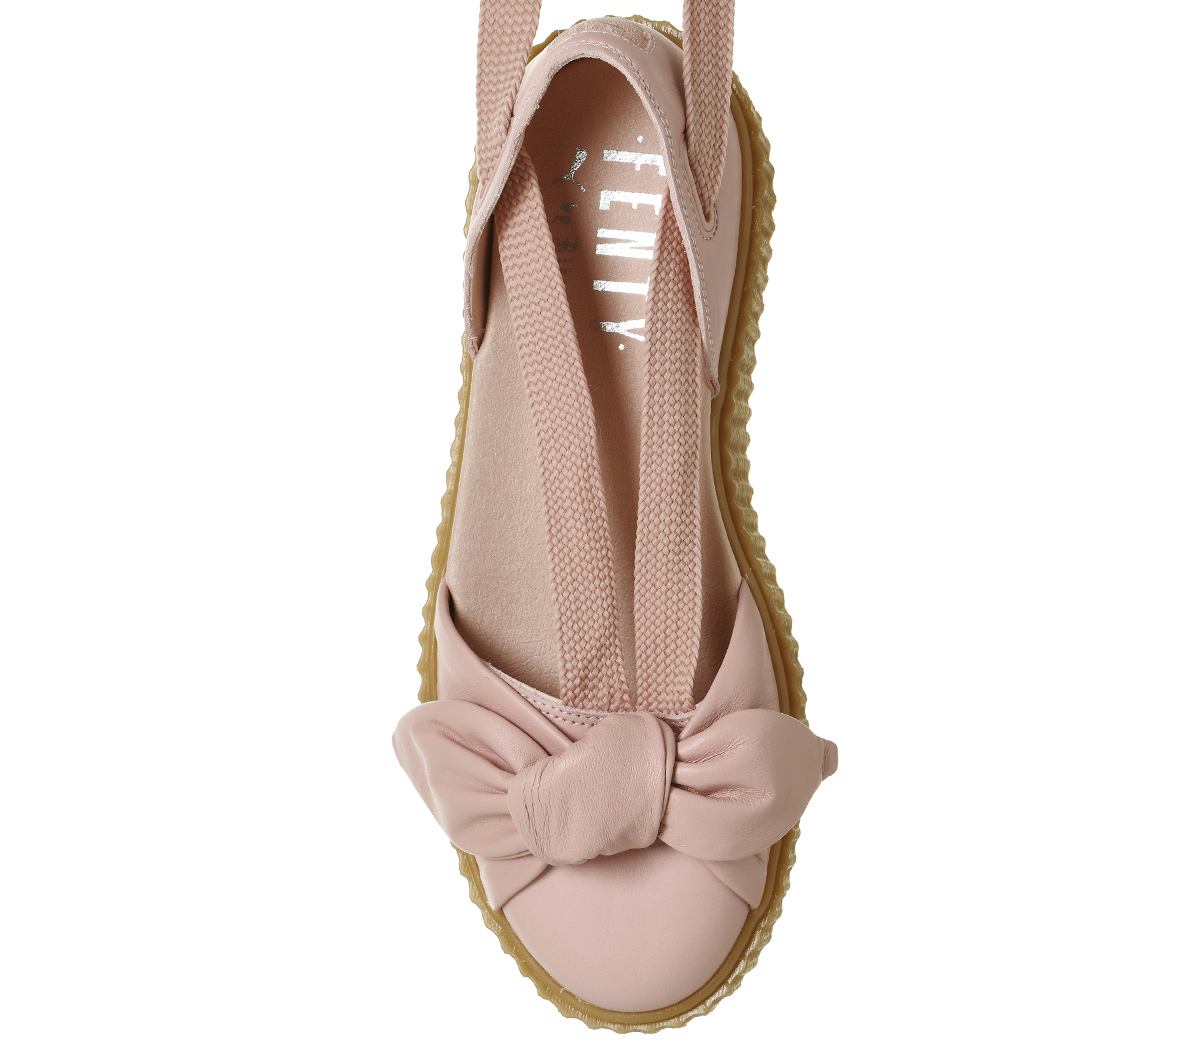 Womens-Puma-Creeper-Ballet-Lace-Pink-Fenty-Sandals thumbnail 3